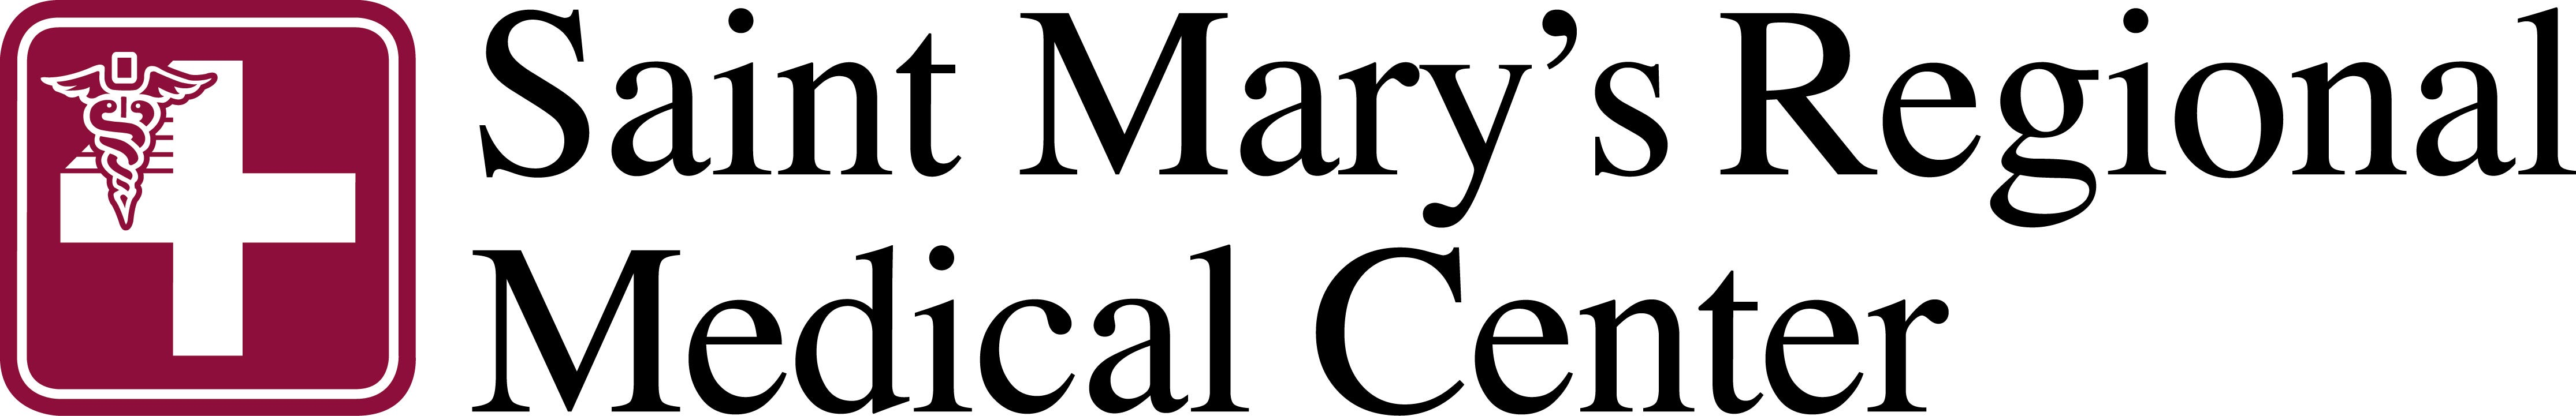 Saint Mary's Regional Medical Center Logo